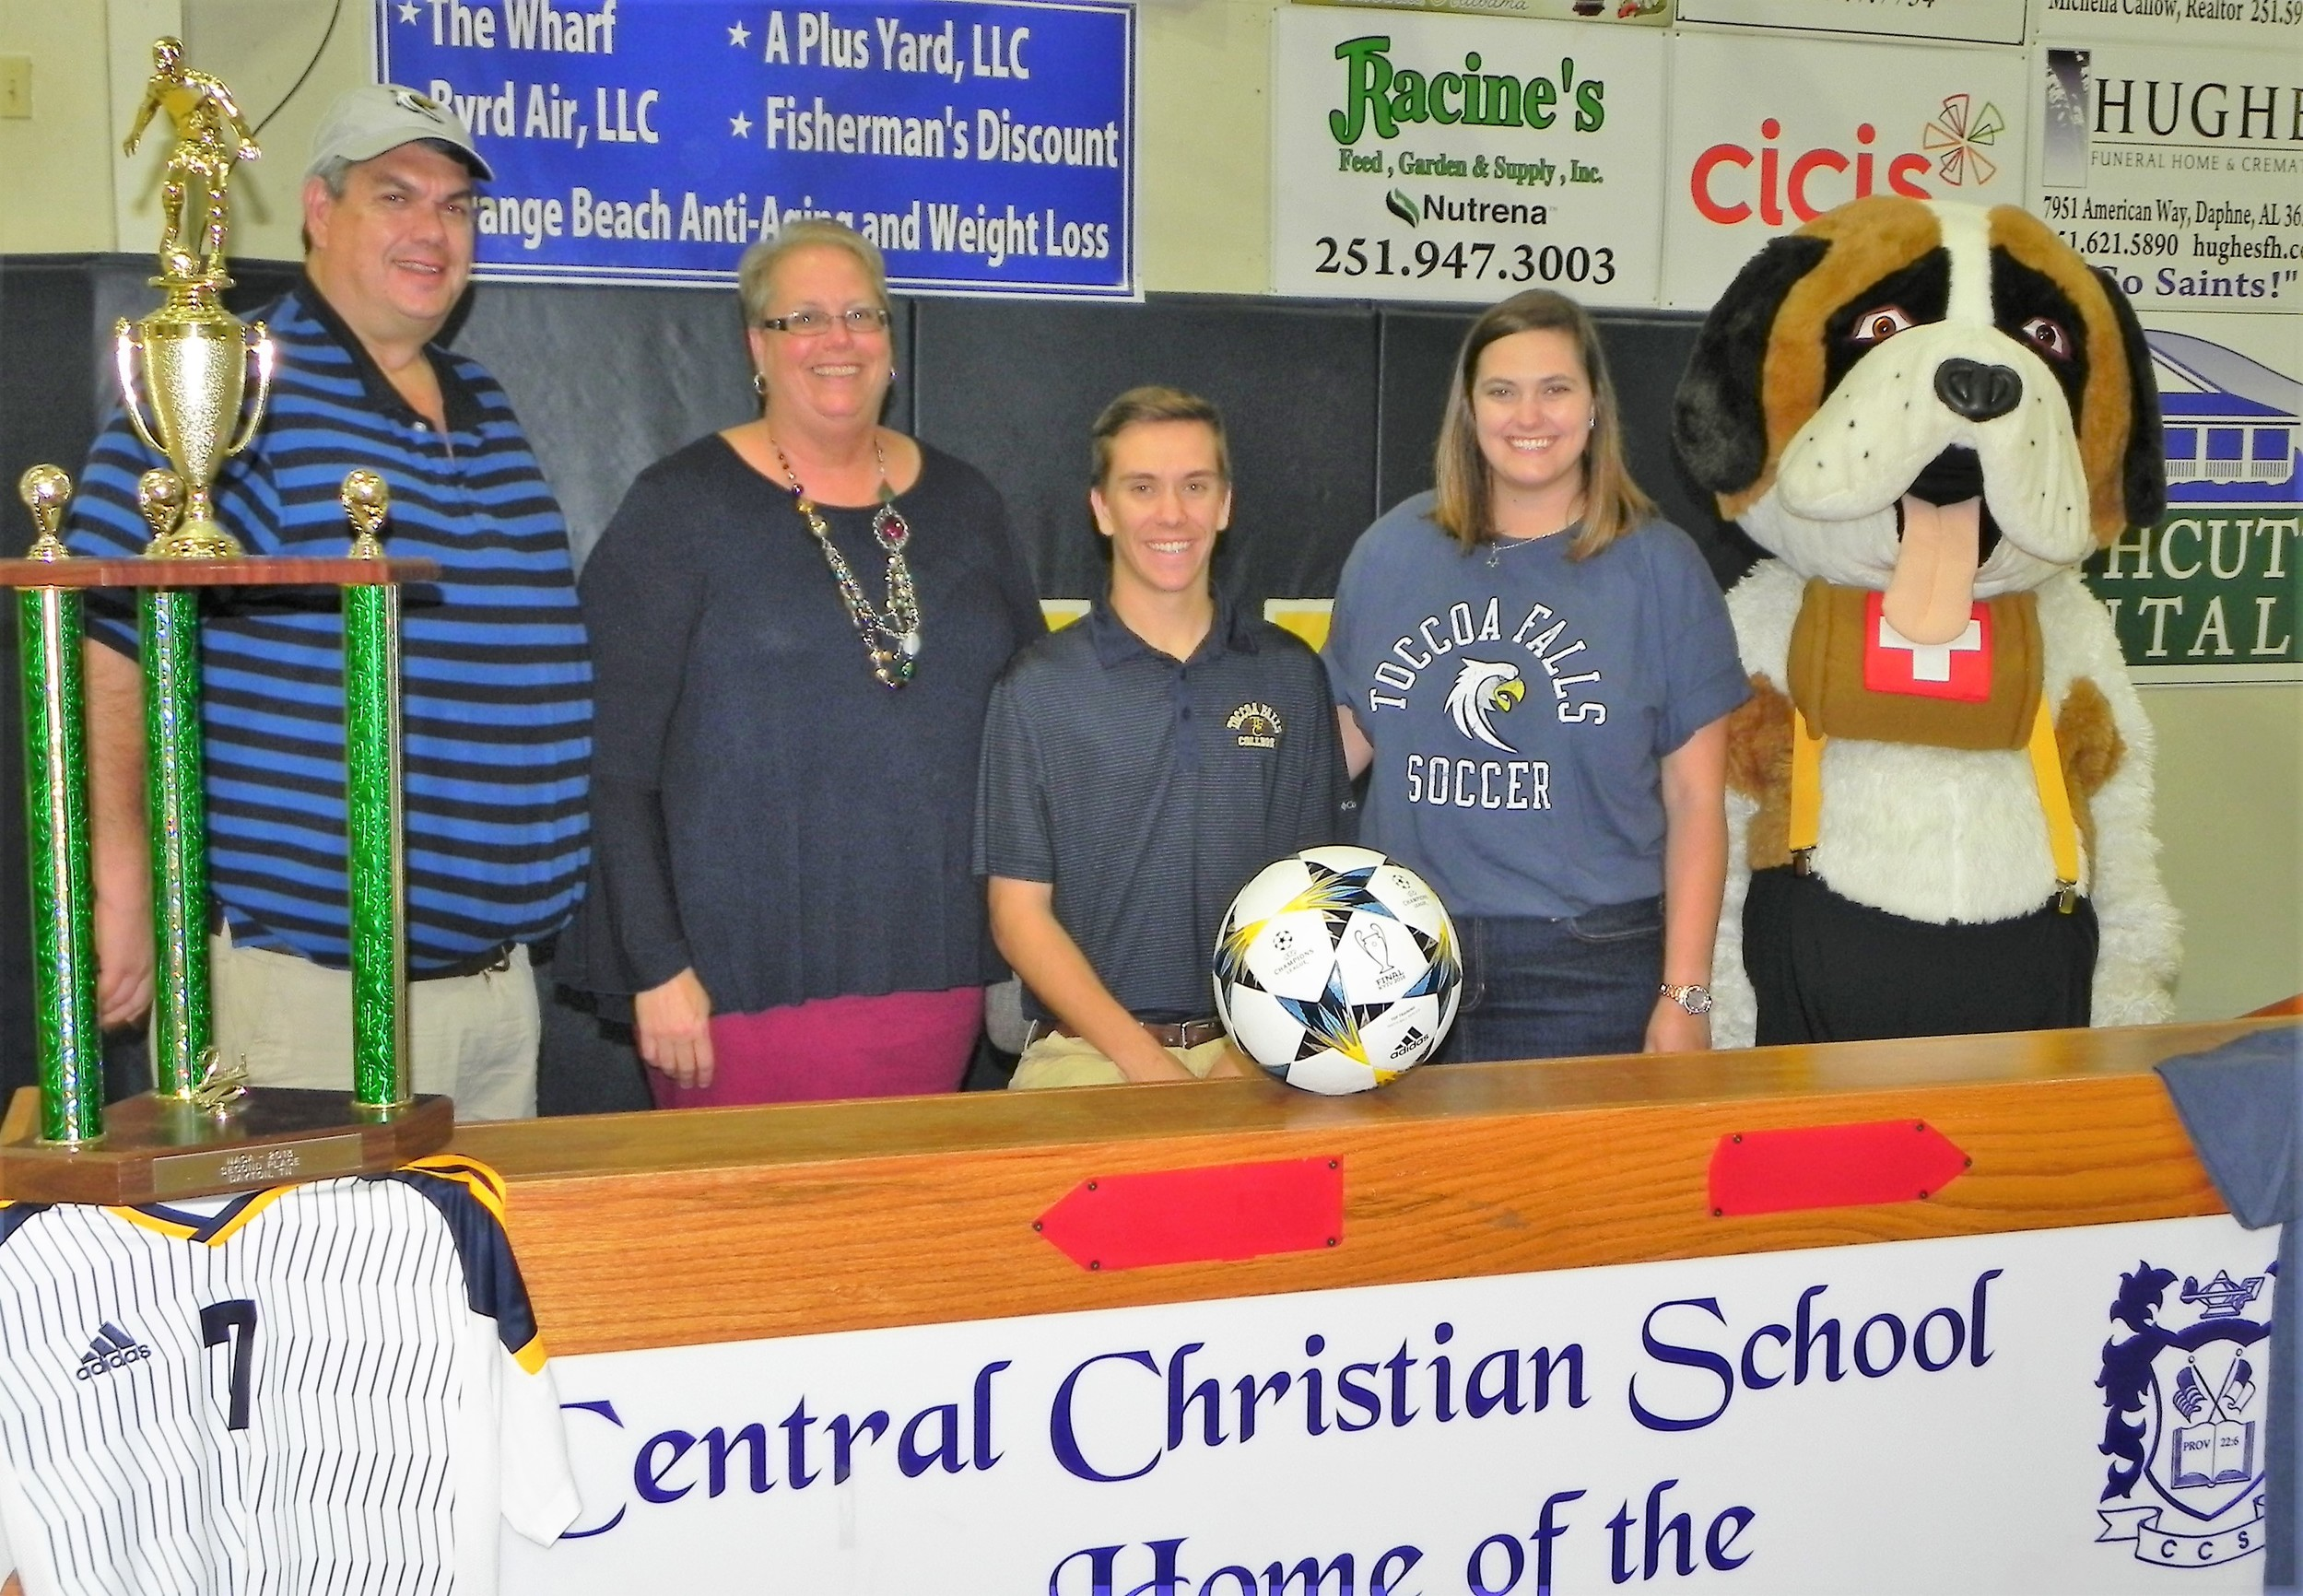 Daniel Crotts III signs Thursday with Toccoa Falls College in Georgia. Also pictured are parents Daniel and Renee Crotts and sister Justine along with the Saints mascot Barney.